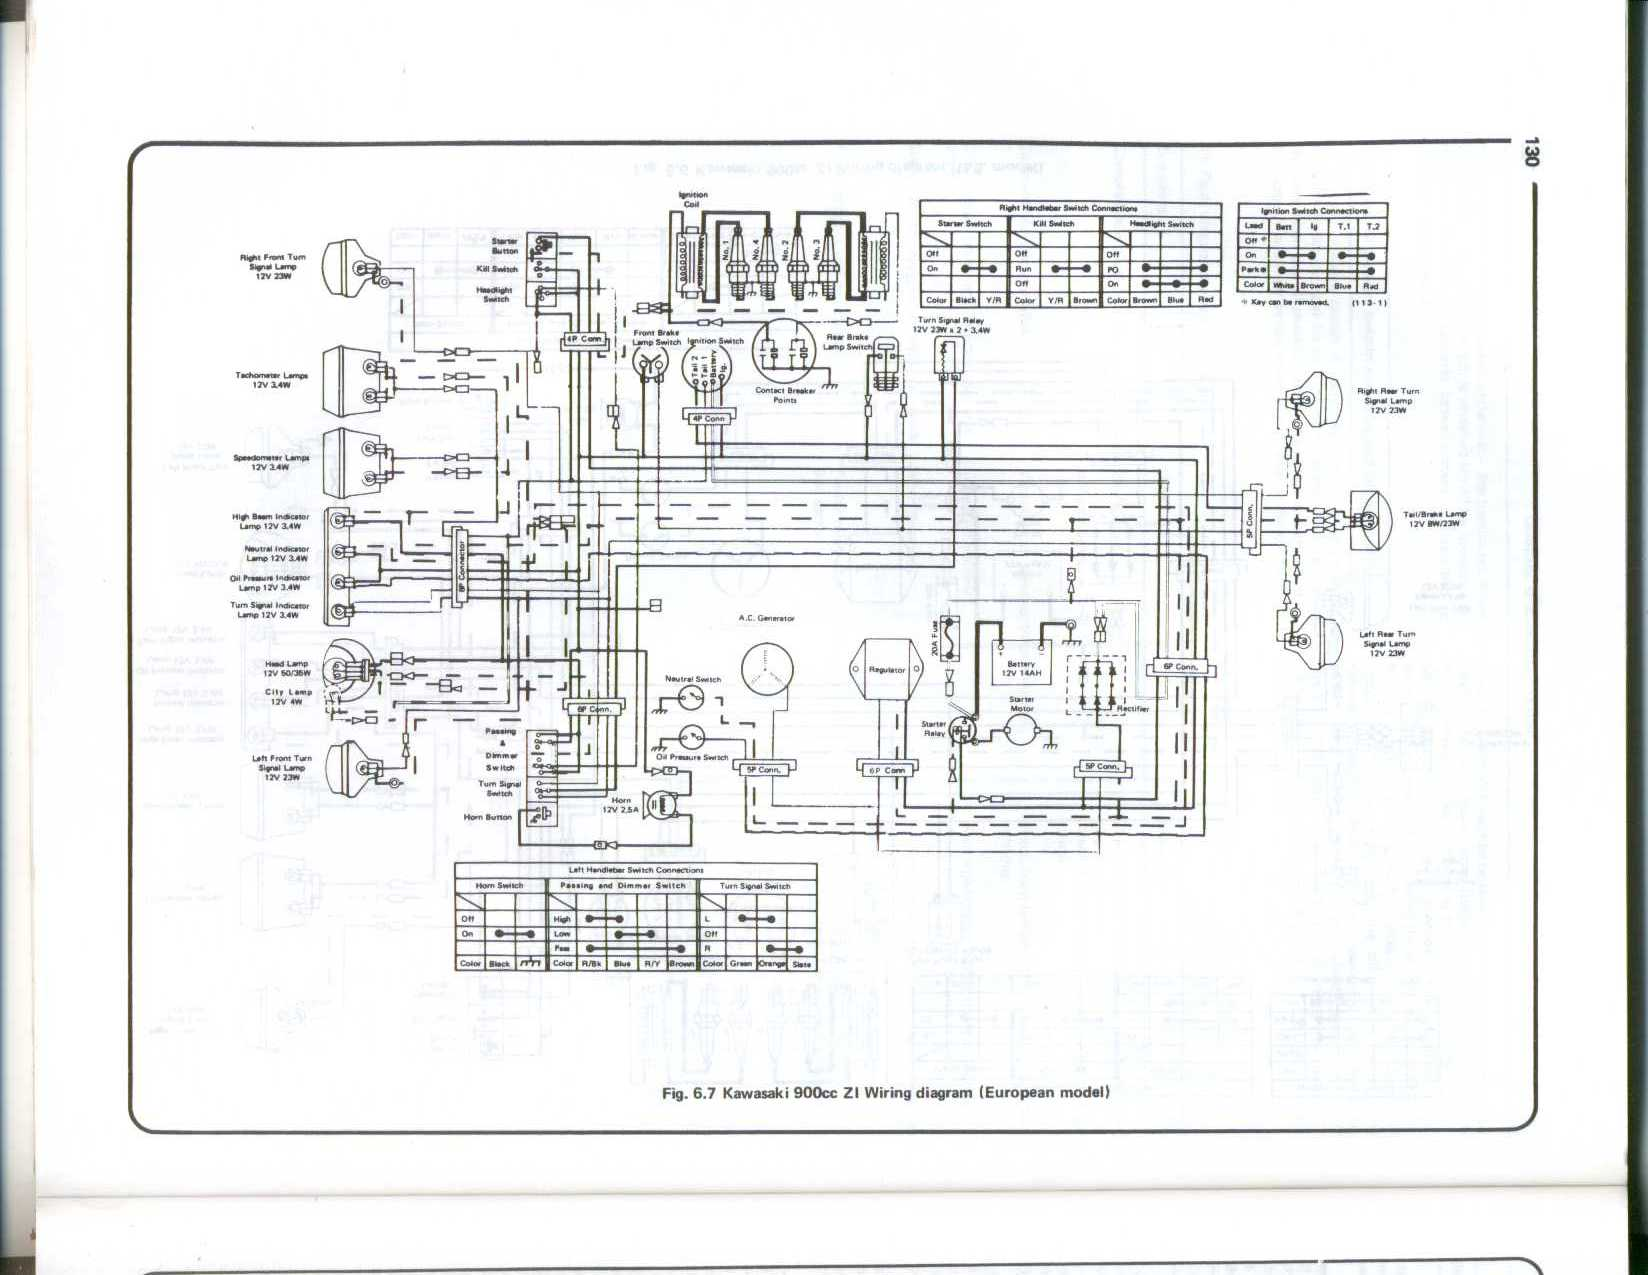 Z1 Wiring Harness Diagram | Wiring Diagram on kawasaki mule wiring-diagram, kawasaki bayou 185 wiring-diagram, kawasaki 400 wiring diagram, kawasaki atv wiring diagram, kawasaki 100 wiring diagram, ezgo wiring diagram, kawasaki 750 wiring diagram, klr 650 wiring diagram, kawasaki 4 wheeler wiring diagram, triton trailer wiring diagram, kawasaki bayou 300 wiring diagram, kawasaki mojave 250, kawasaki 500 wiring diagram, kawasaki ignition system wiring diagram, kawasaki 250 parts diagram, kawasaki engine wiring diagrams, suzuki marauder wiring diagram, kawasaki bayou 220 wiring diagram, kawasaki motorcycle wiring diagrams, kawasaki kz1000 wiring-diagram,